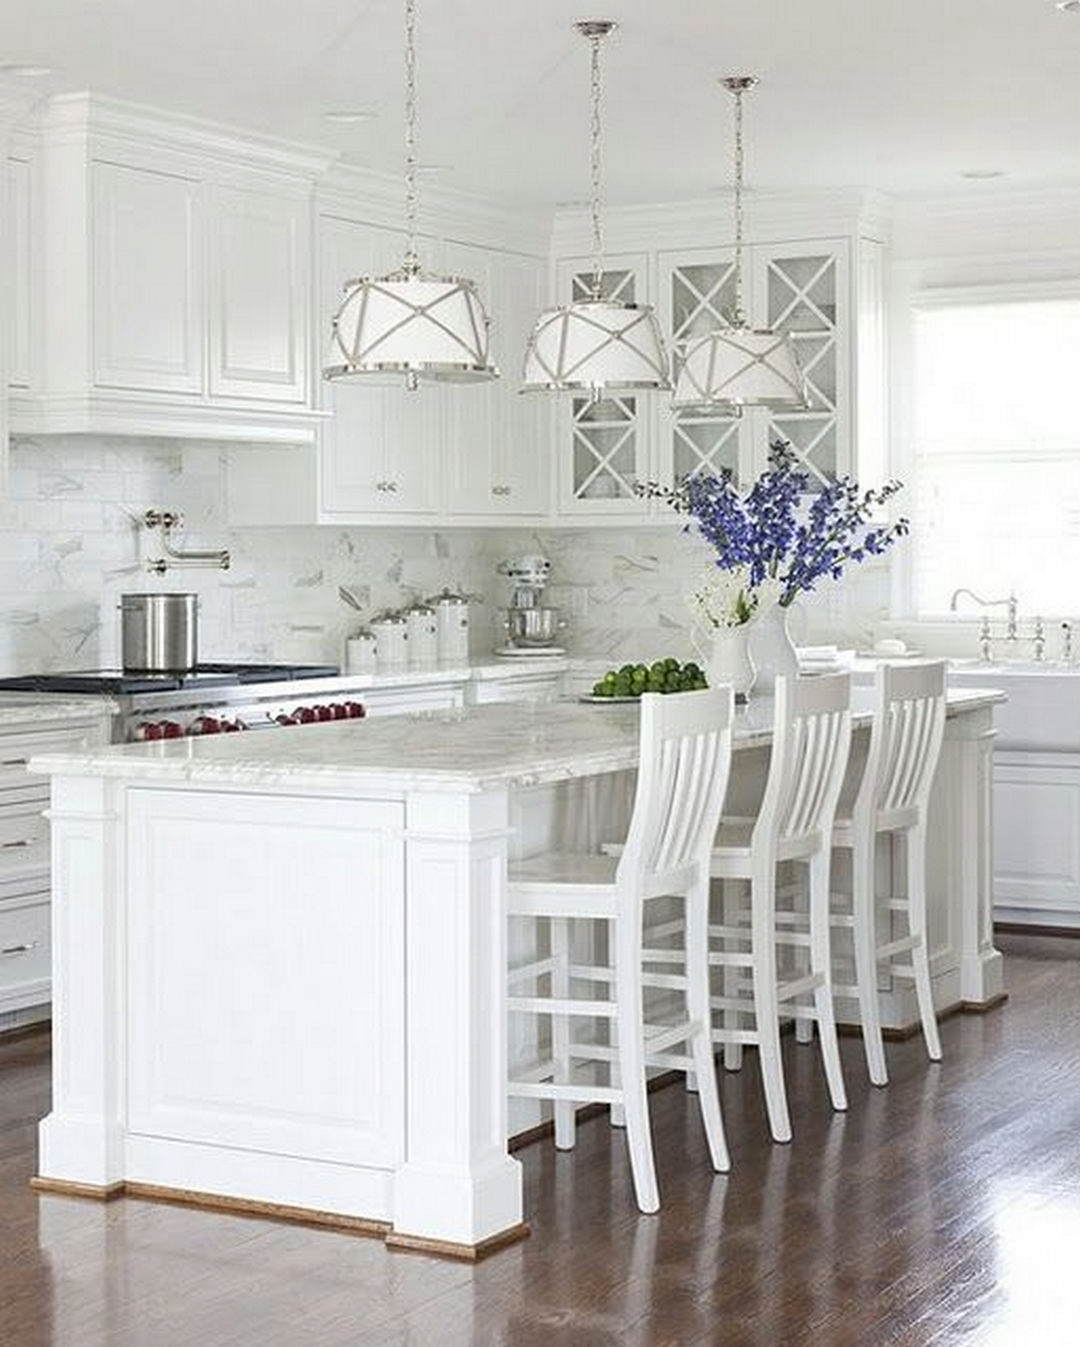 Why White Kitchen Interior is Still Great for 2019 | Kitchen Ideas on interior trim molding painting ideas, victorian bathrooms ideas, victorian wainscoting ideas, victorian dining room ideas, victorian landscaping ideas, sheer curtain ideas, painting molding and trim ideas, victorian window treatments ideas, victorian era home interior design, victorian decorating, victorian baseboard ideas, victorian ceilings ideas, victorian laundry room ideas, victorian staircase design ideas, victorian kitchens ideas,